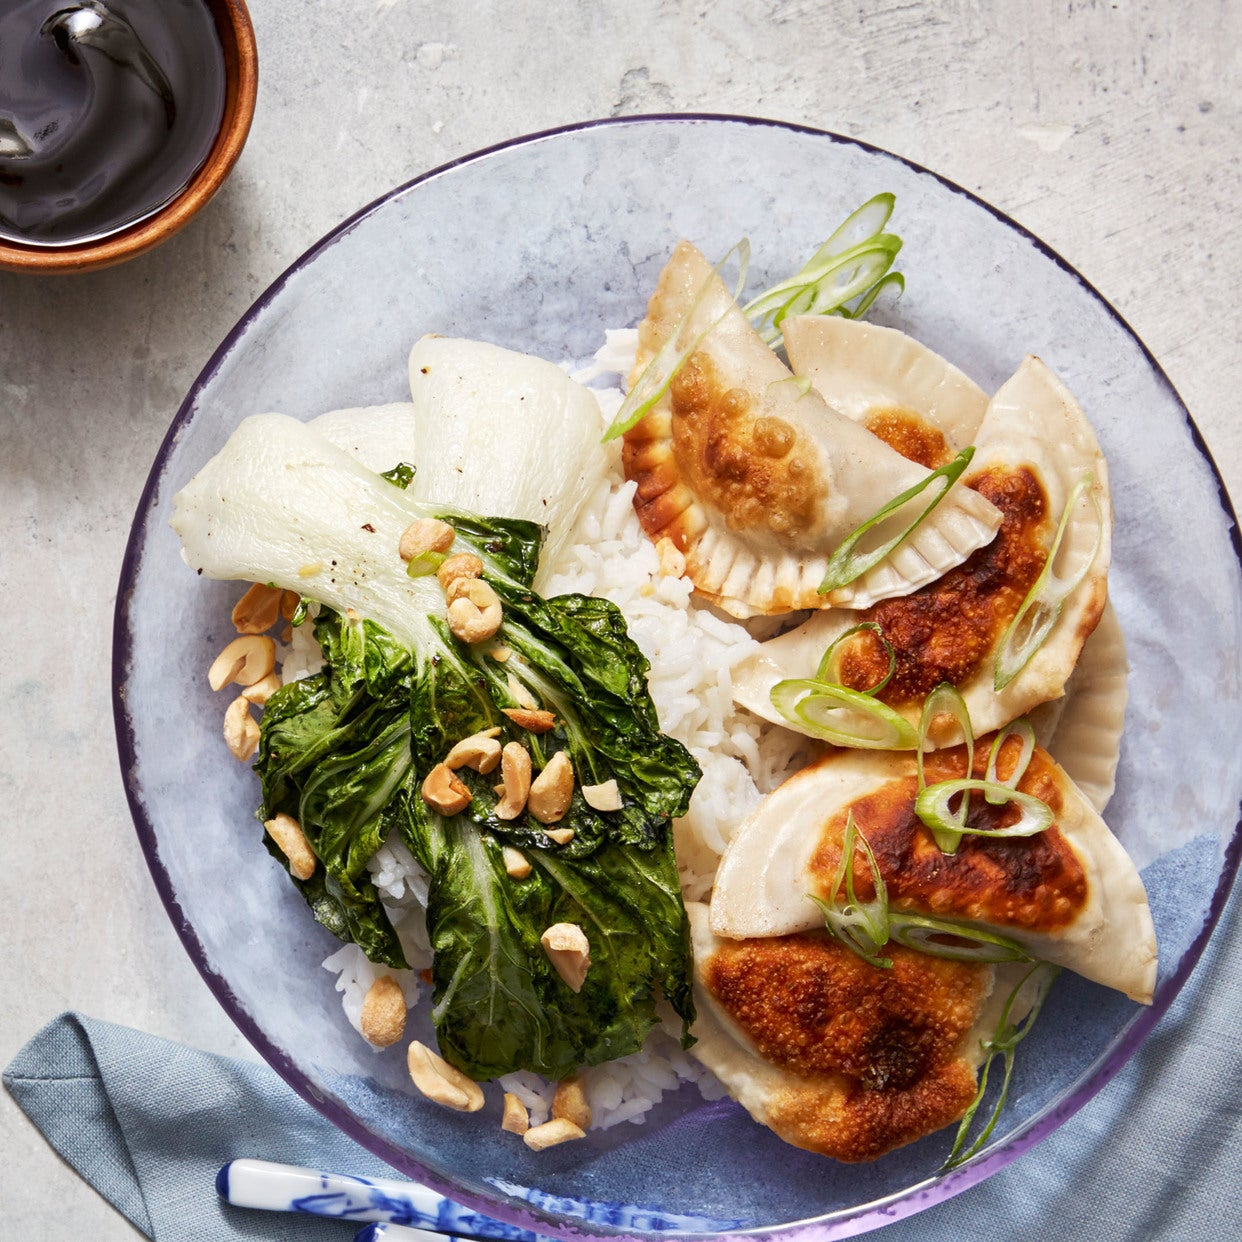 Mushroom & Cabbage Dumplings with Roasted Bok Choy & Basmati Rice